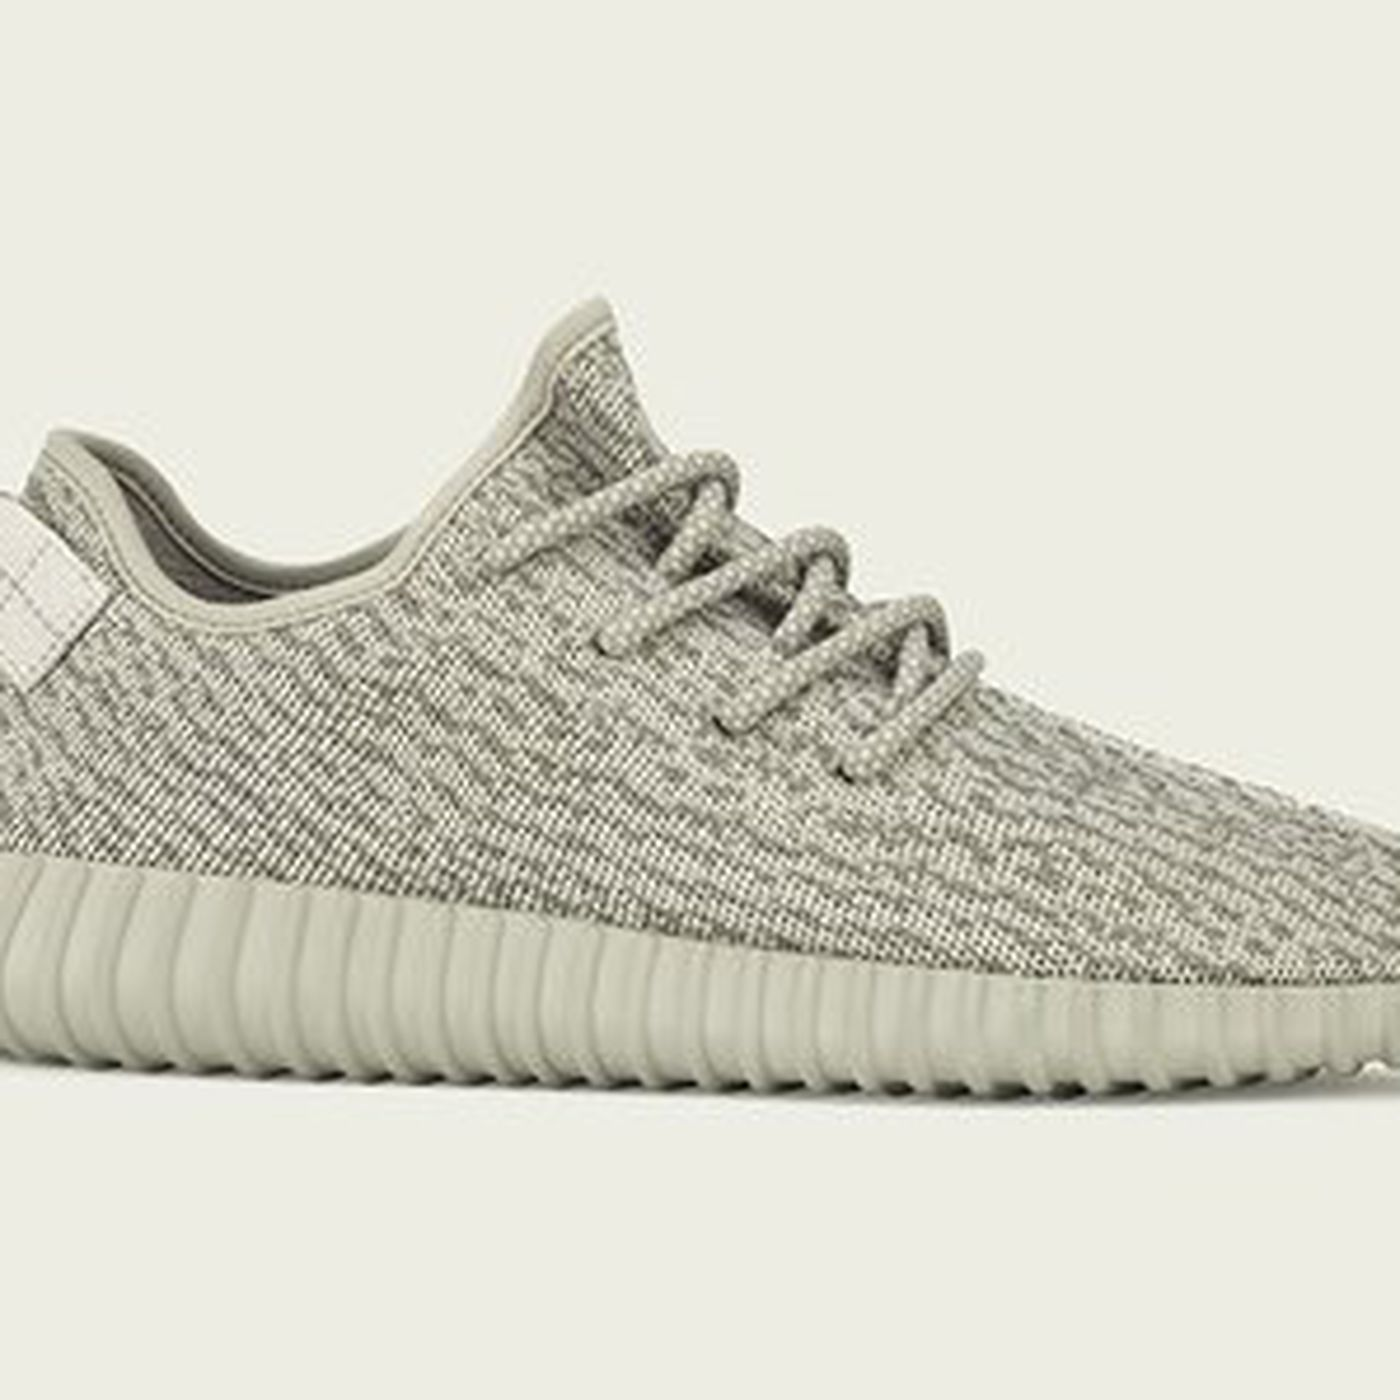 hot sale online 2d5b6 3cedb 42 Places to Buy Kanye West's New Yeezys - Racked